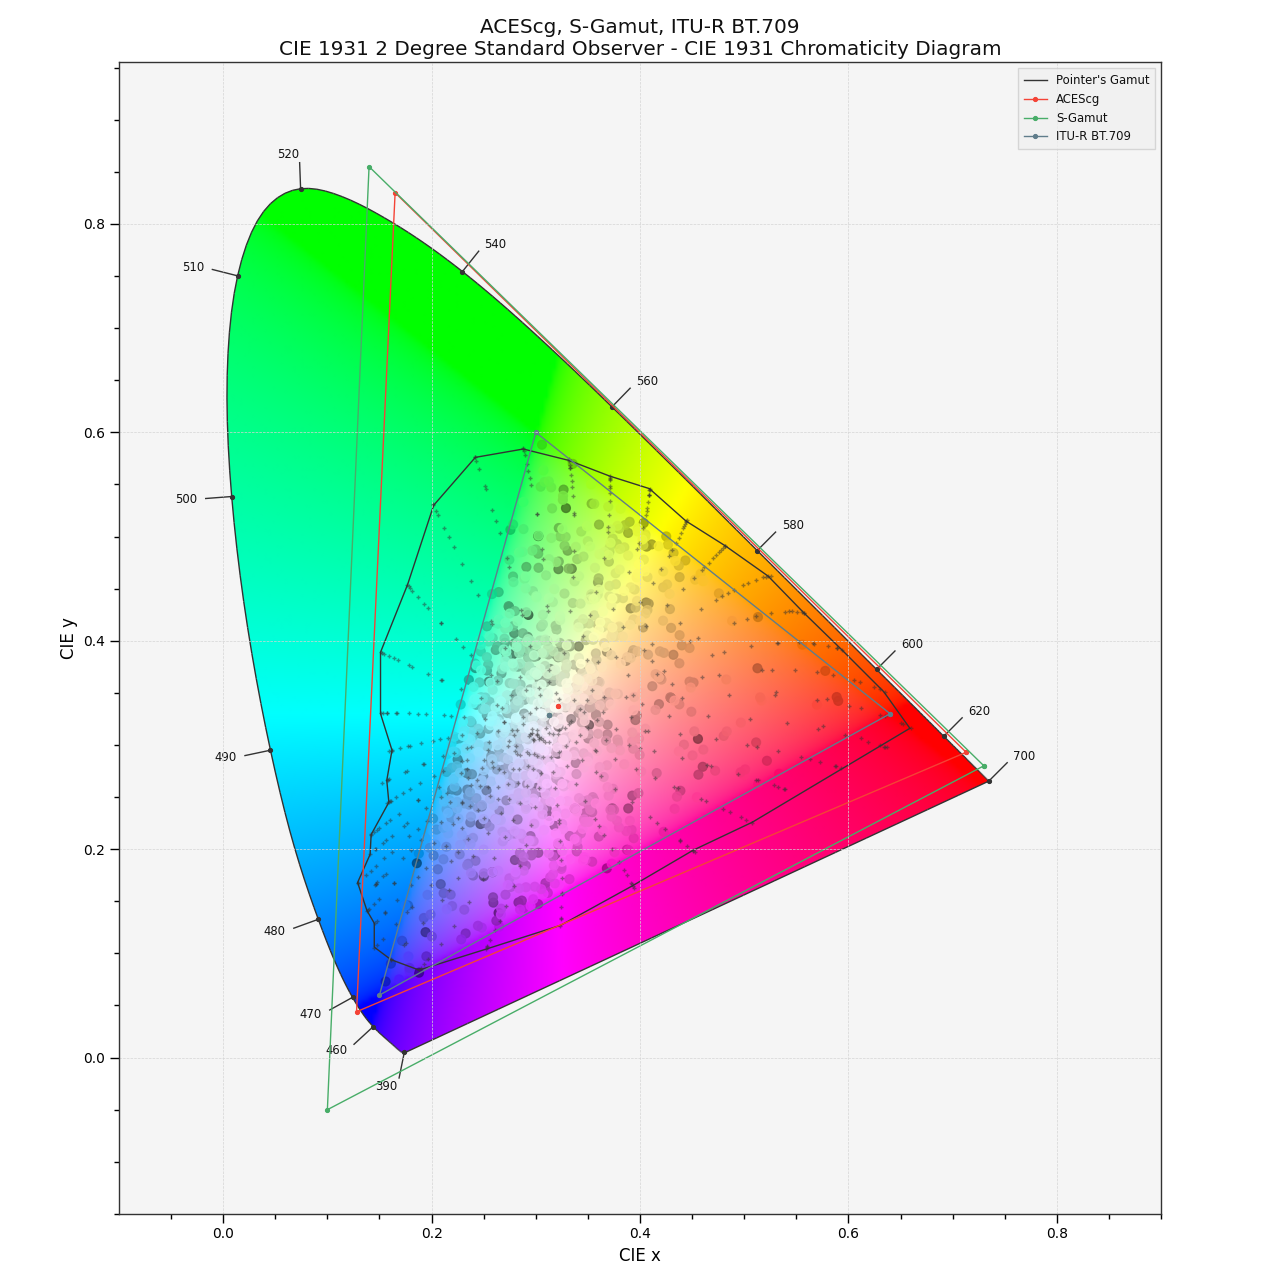 https://colour.readthedocs.io/en/develop/_images/Examples_Plotting_Chromaticities_CIE_1931_Chromaticity_Diagram.png